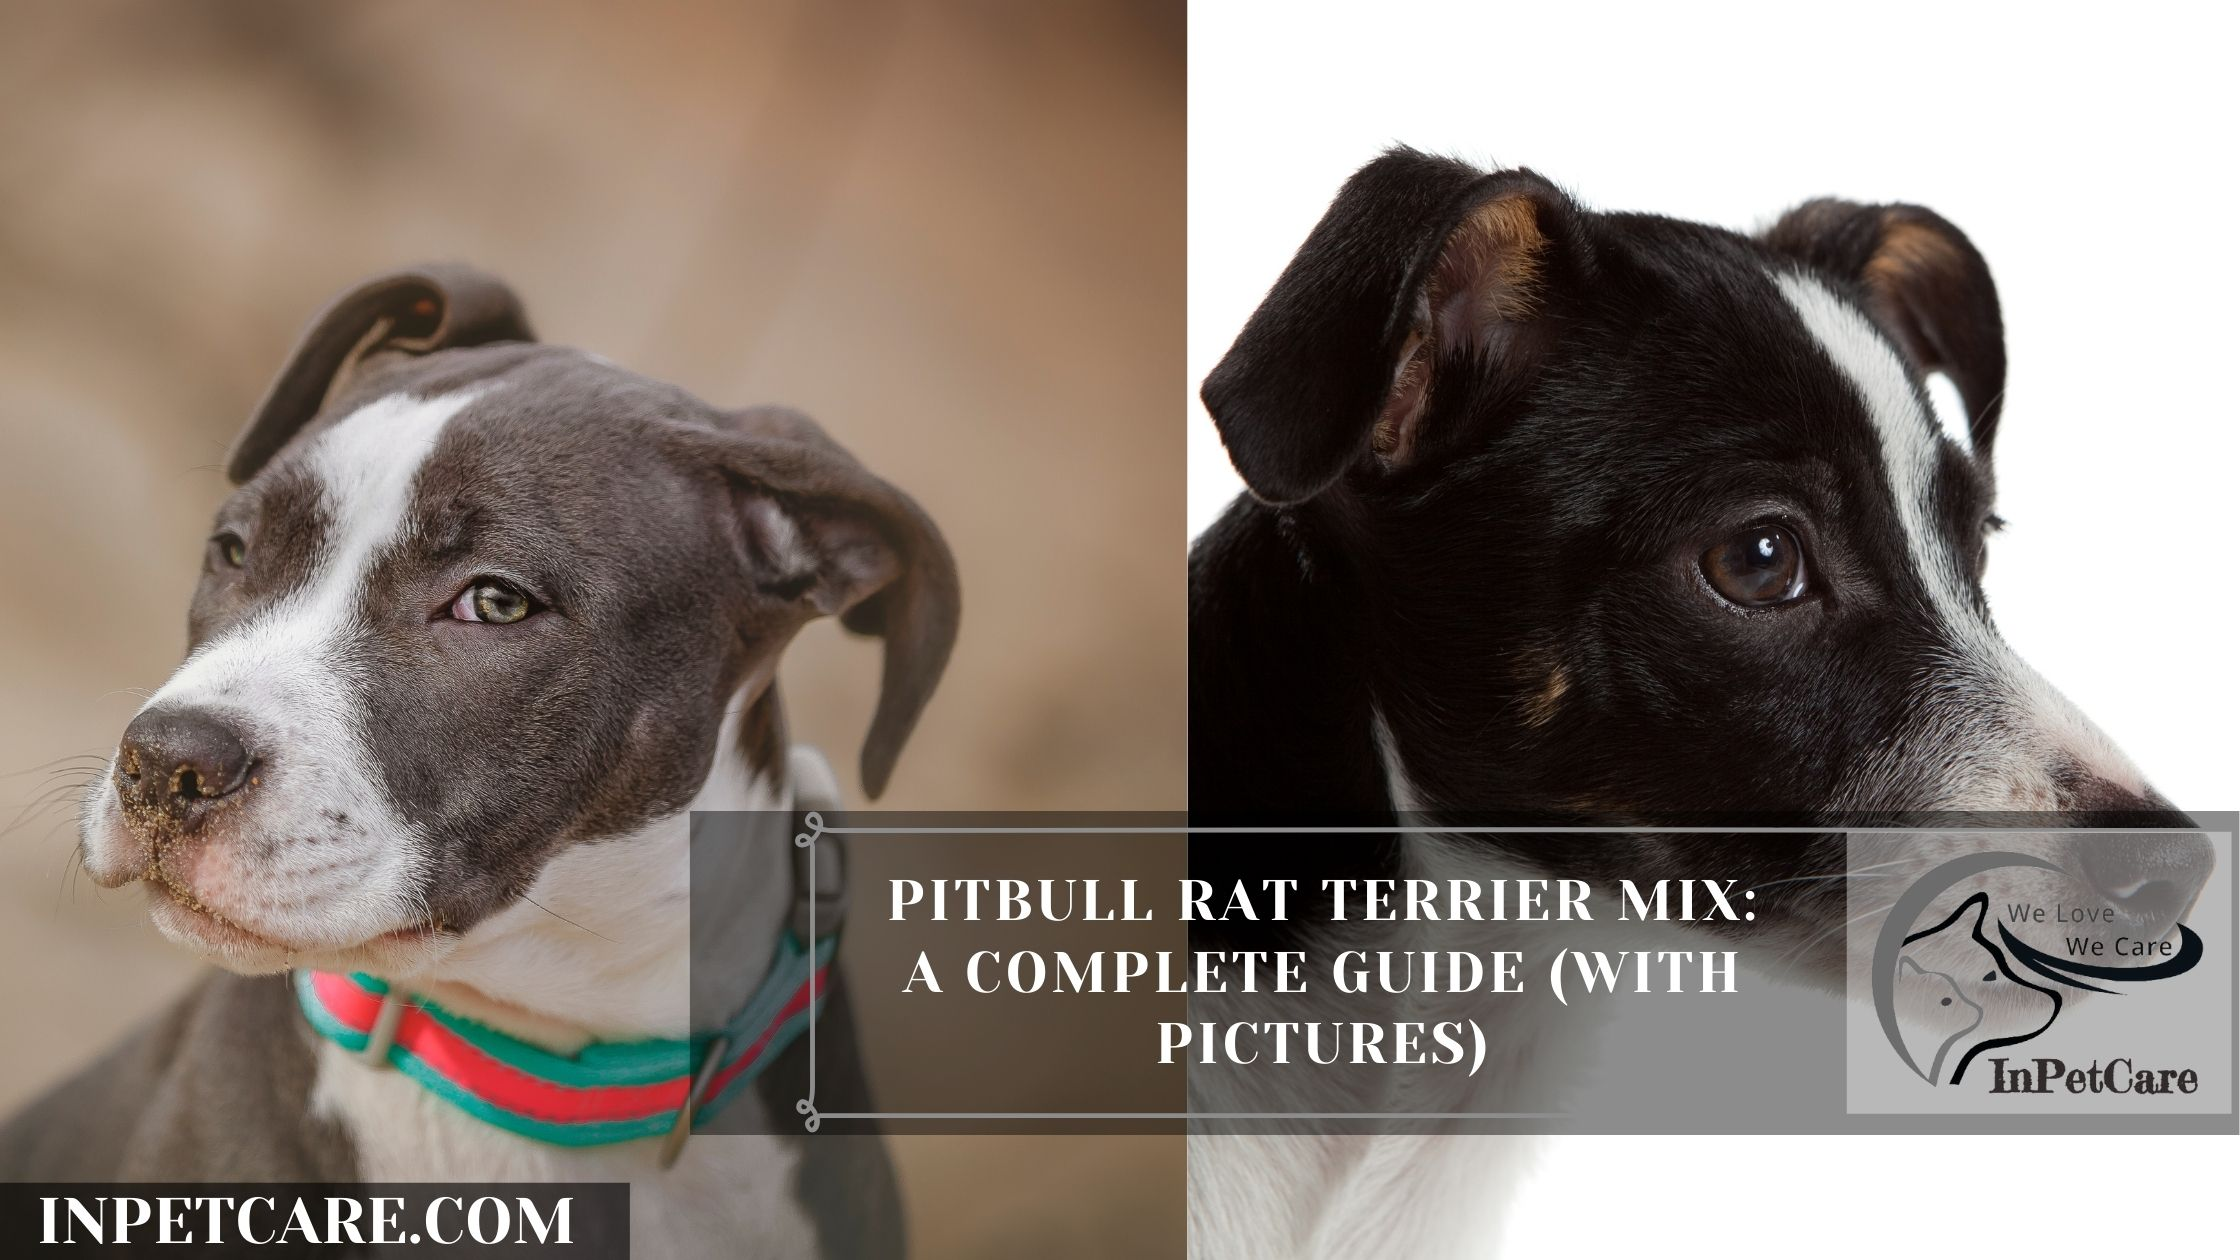 Pitbull Rat Terrier Mix: A Complete Guide (With Pictures)Pitbull Rat Terrier Mix: A Complete Guide (With Pictures)